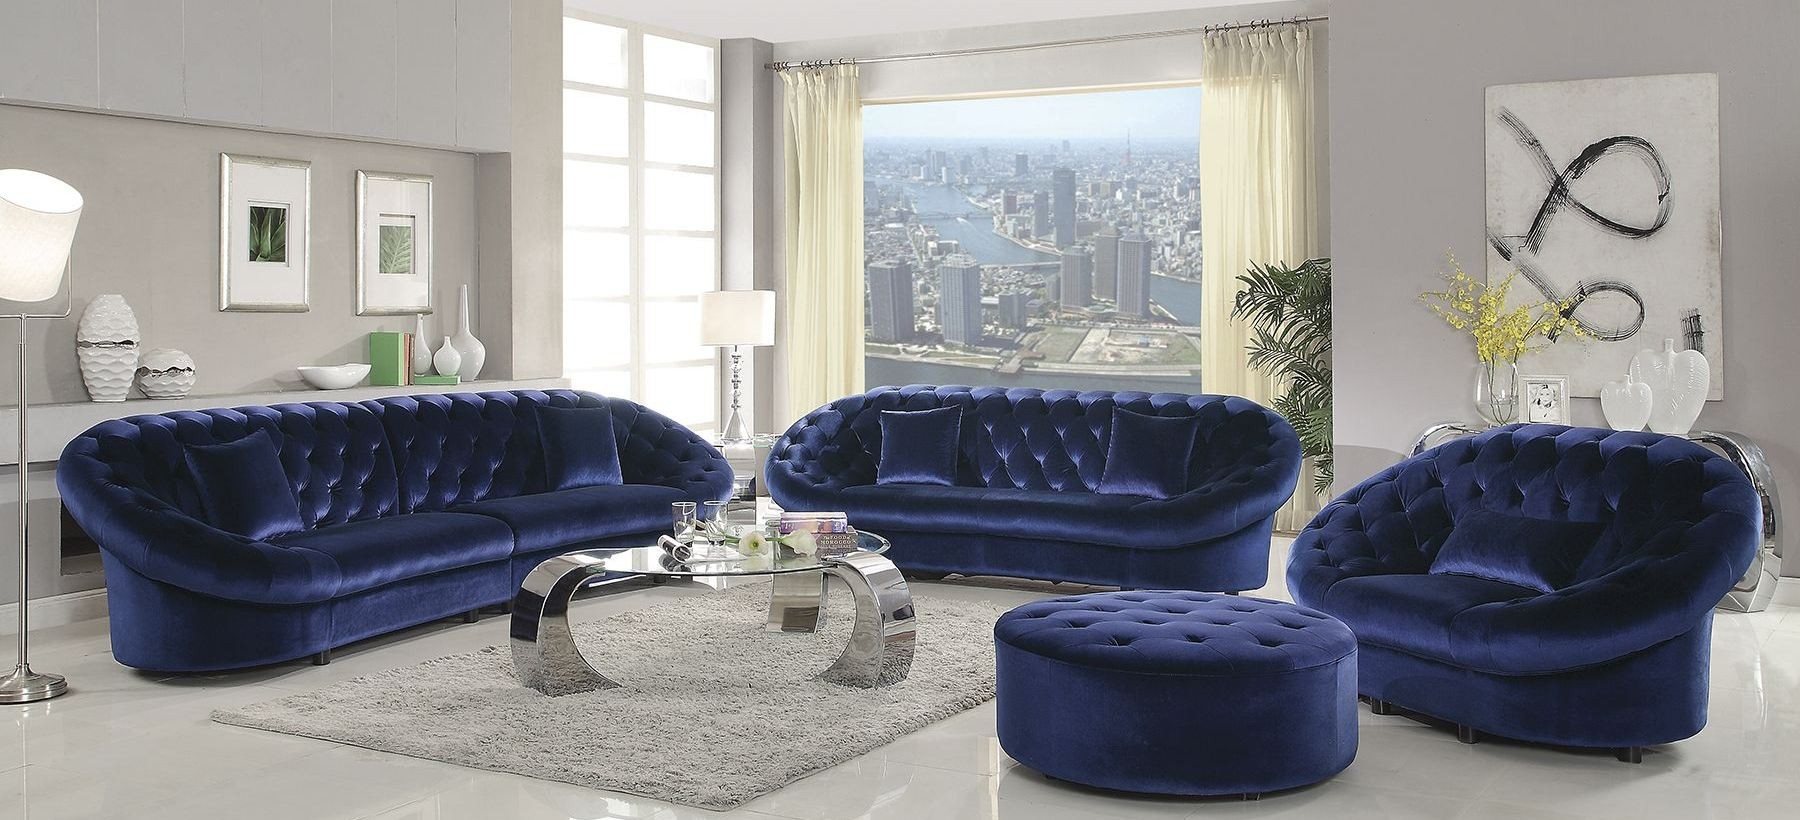 royal blue furniture living room romanus royal blue velvet living room set 511042 coaster 20561